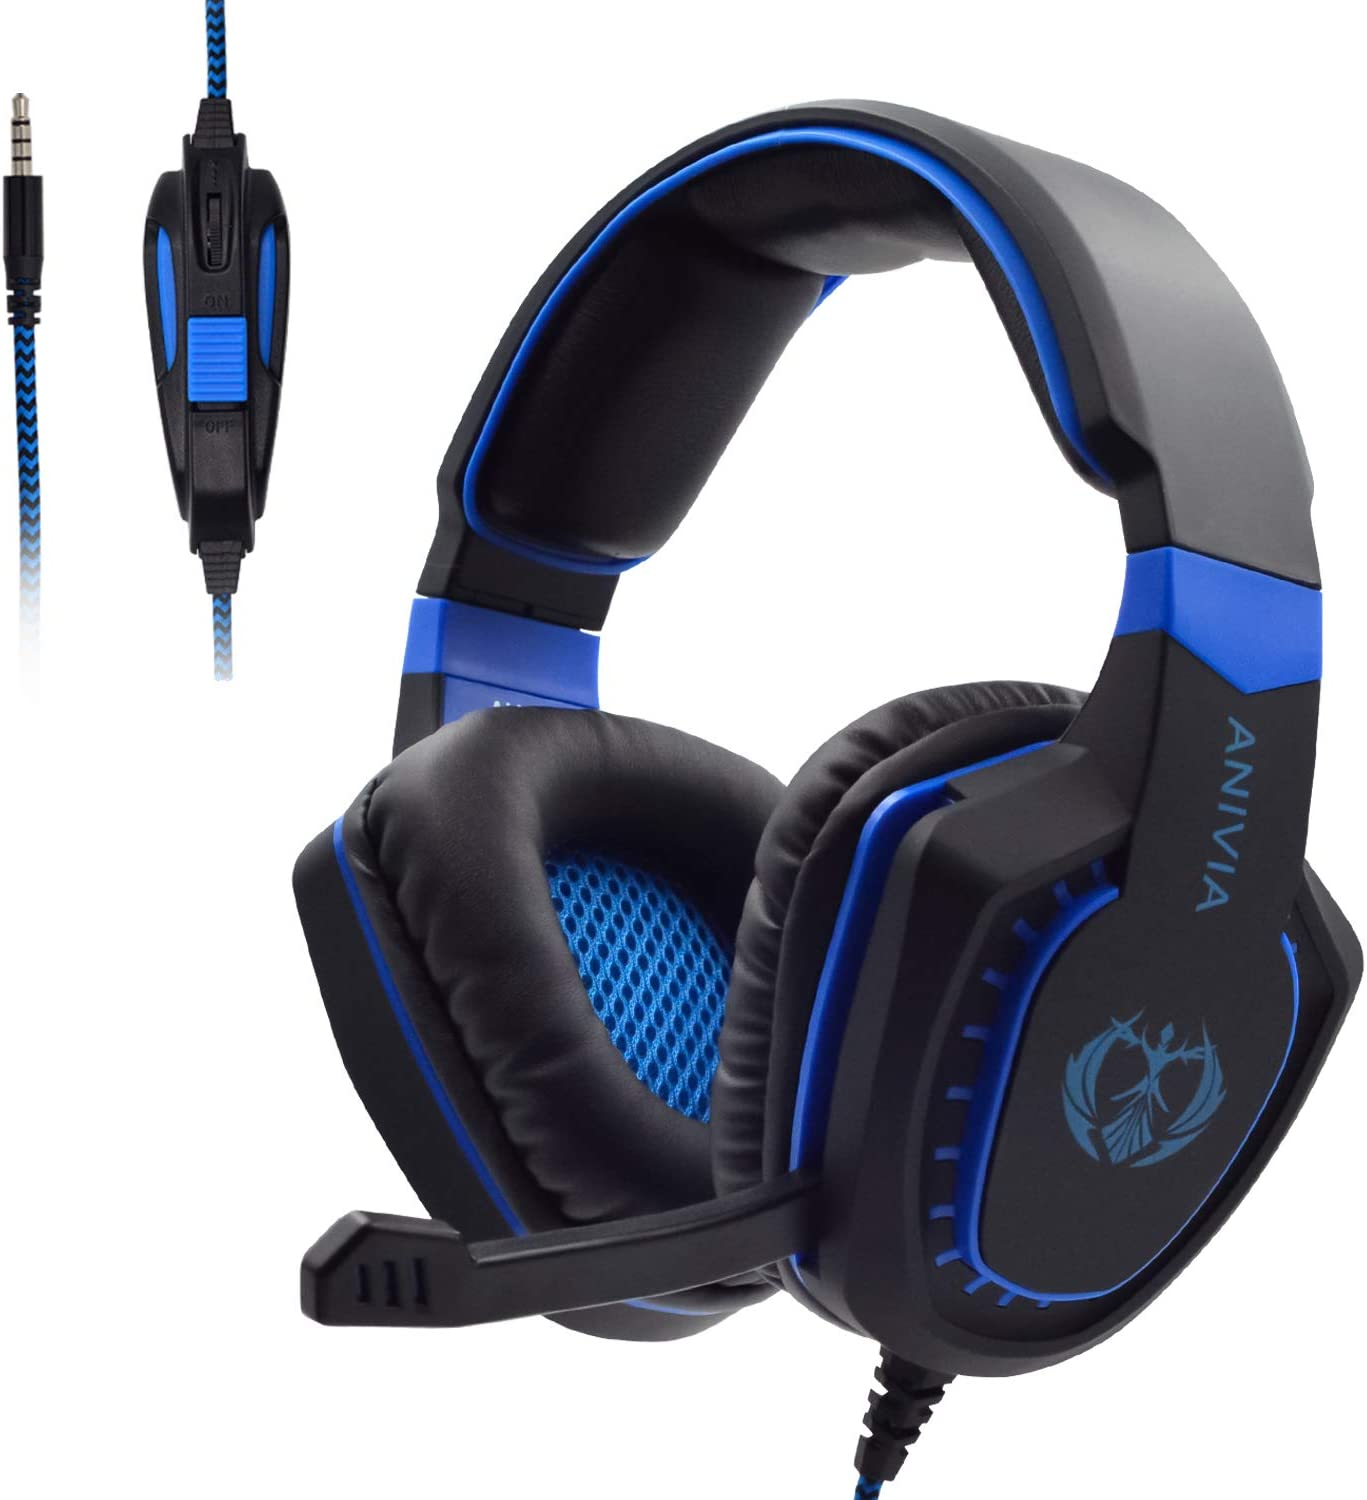 Soft Memory Earmuffs for Laptop Mac Xb One Controller Black Noise Cancelling Over Ear Headphones with Mic PC Sandistore HI-FI Sound Quality Wired Gaming Headset for PS4